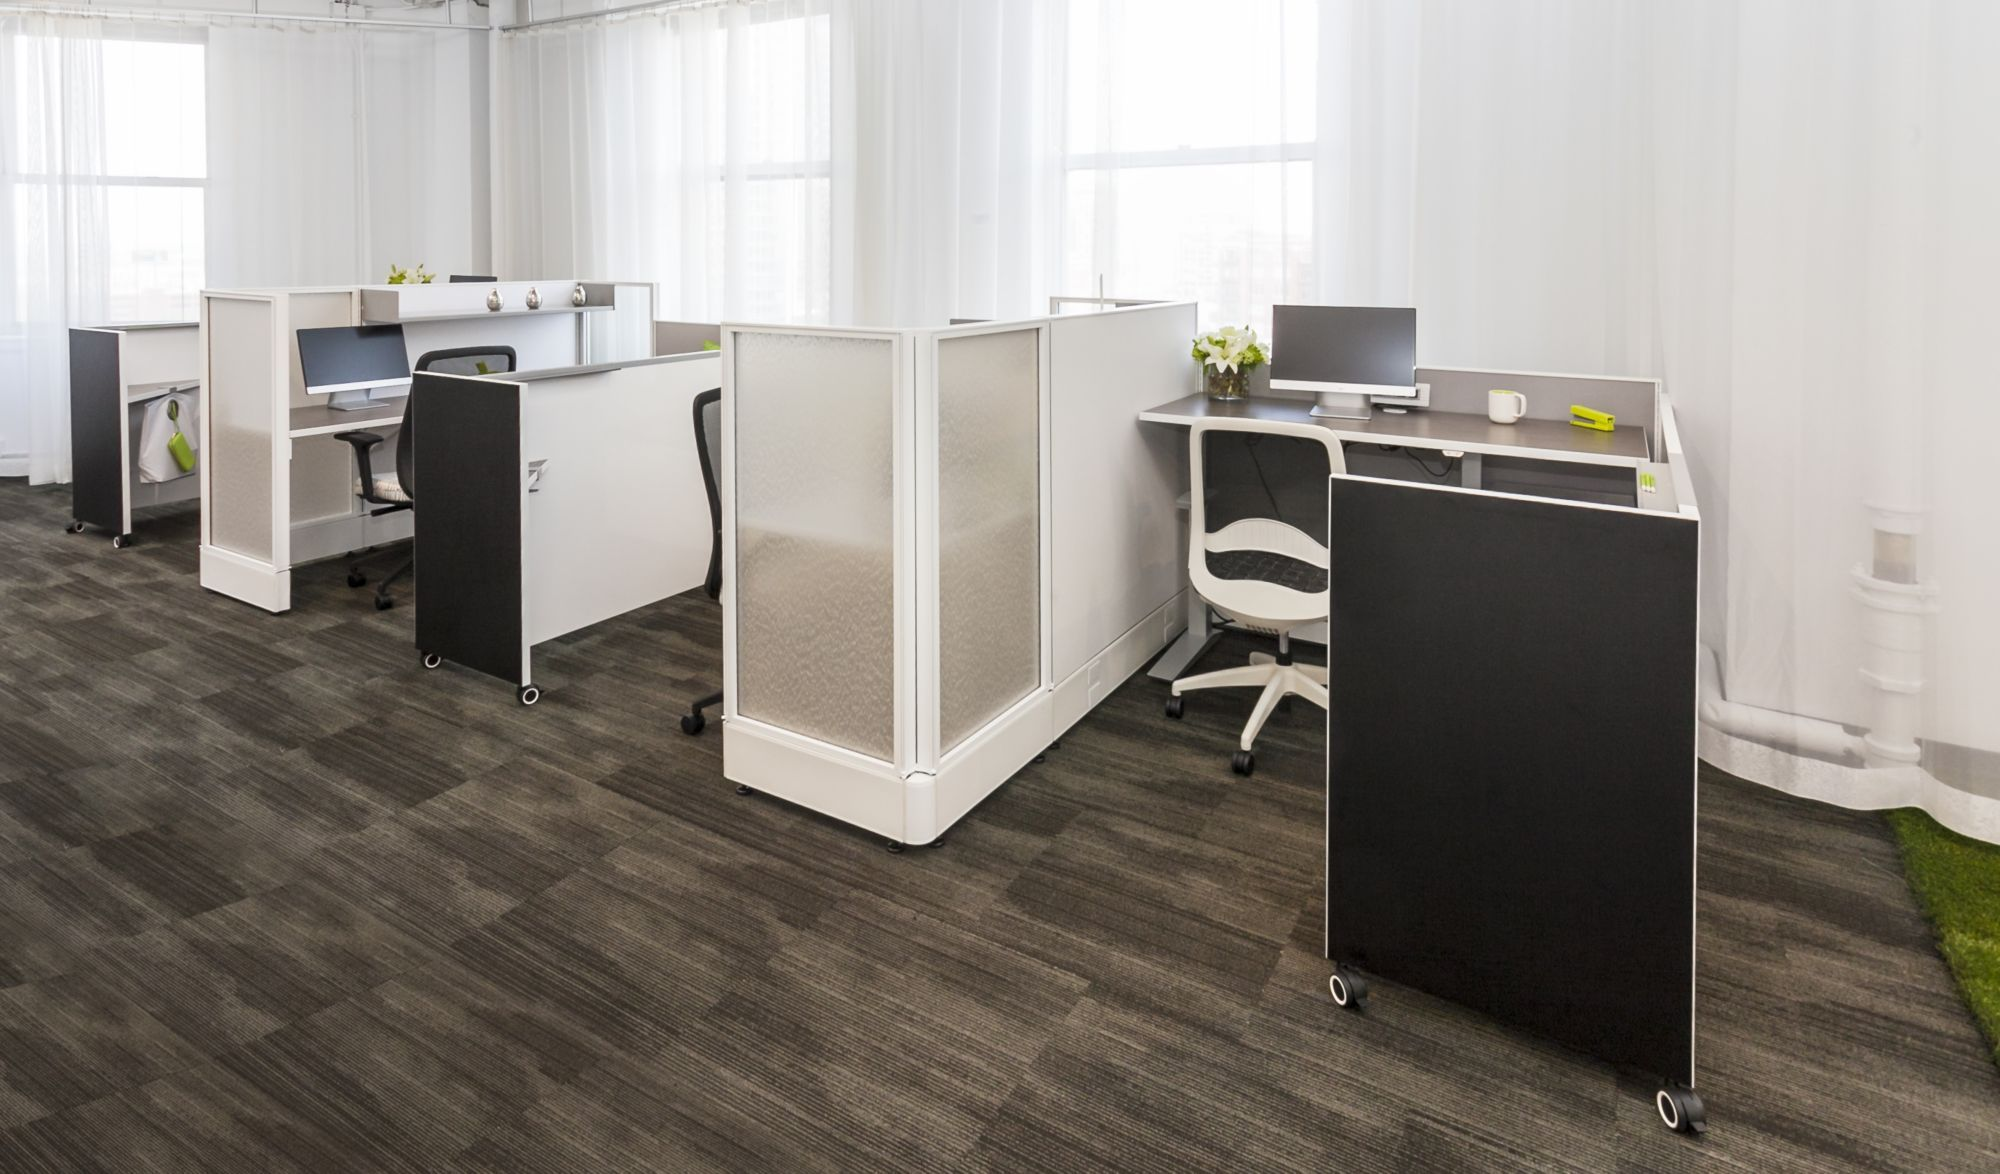 Office Furniture Dallas Texas, Pre Owned Cubicles Dallas, Office Cubiclesu2026